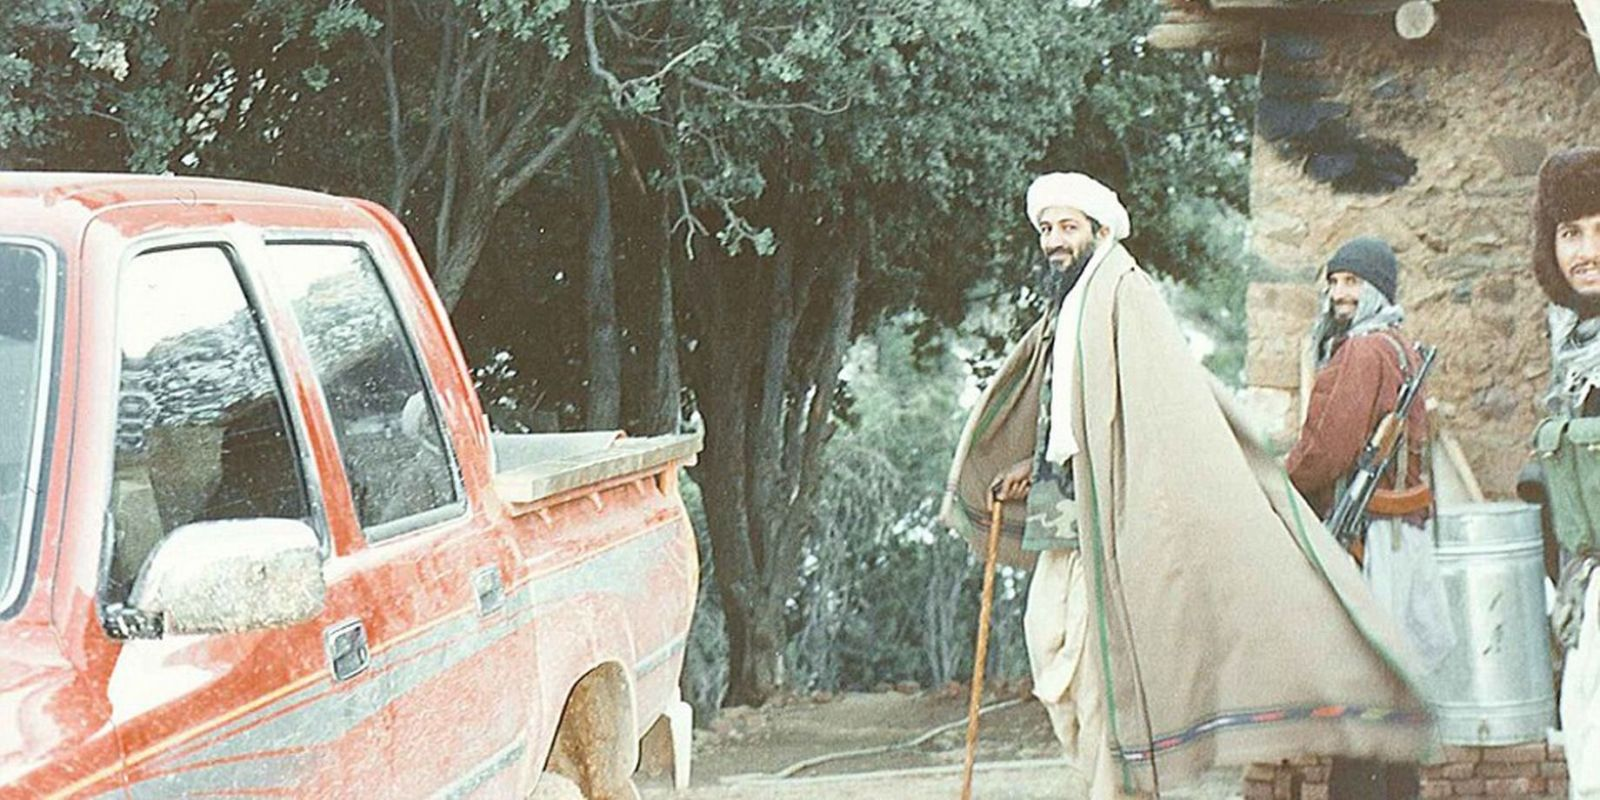 osama bin laden compound photos tora bora photos